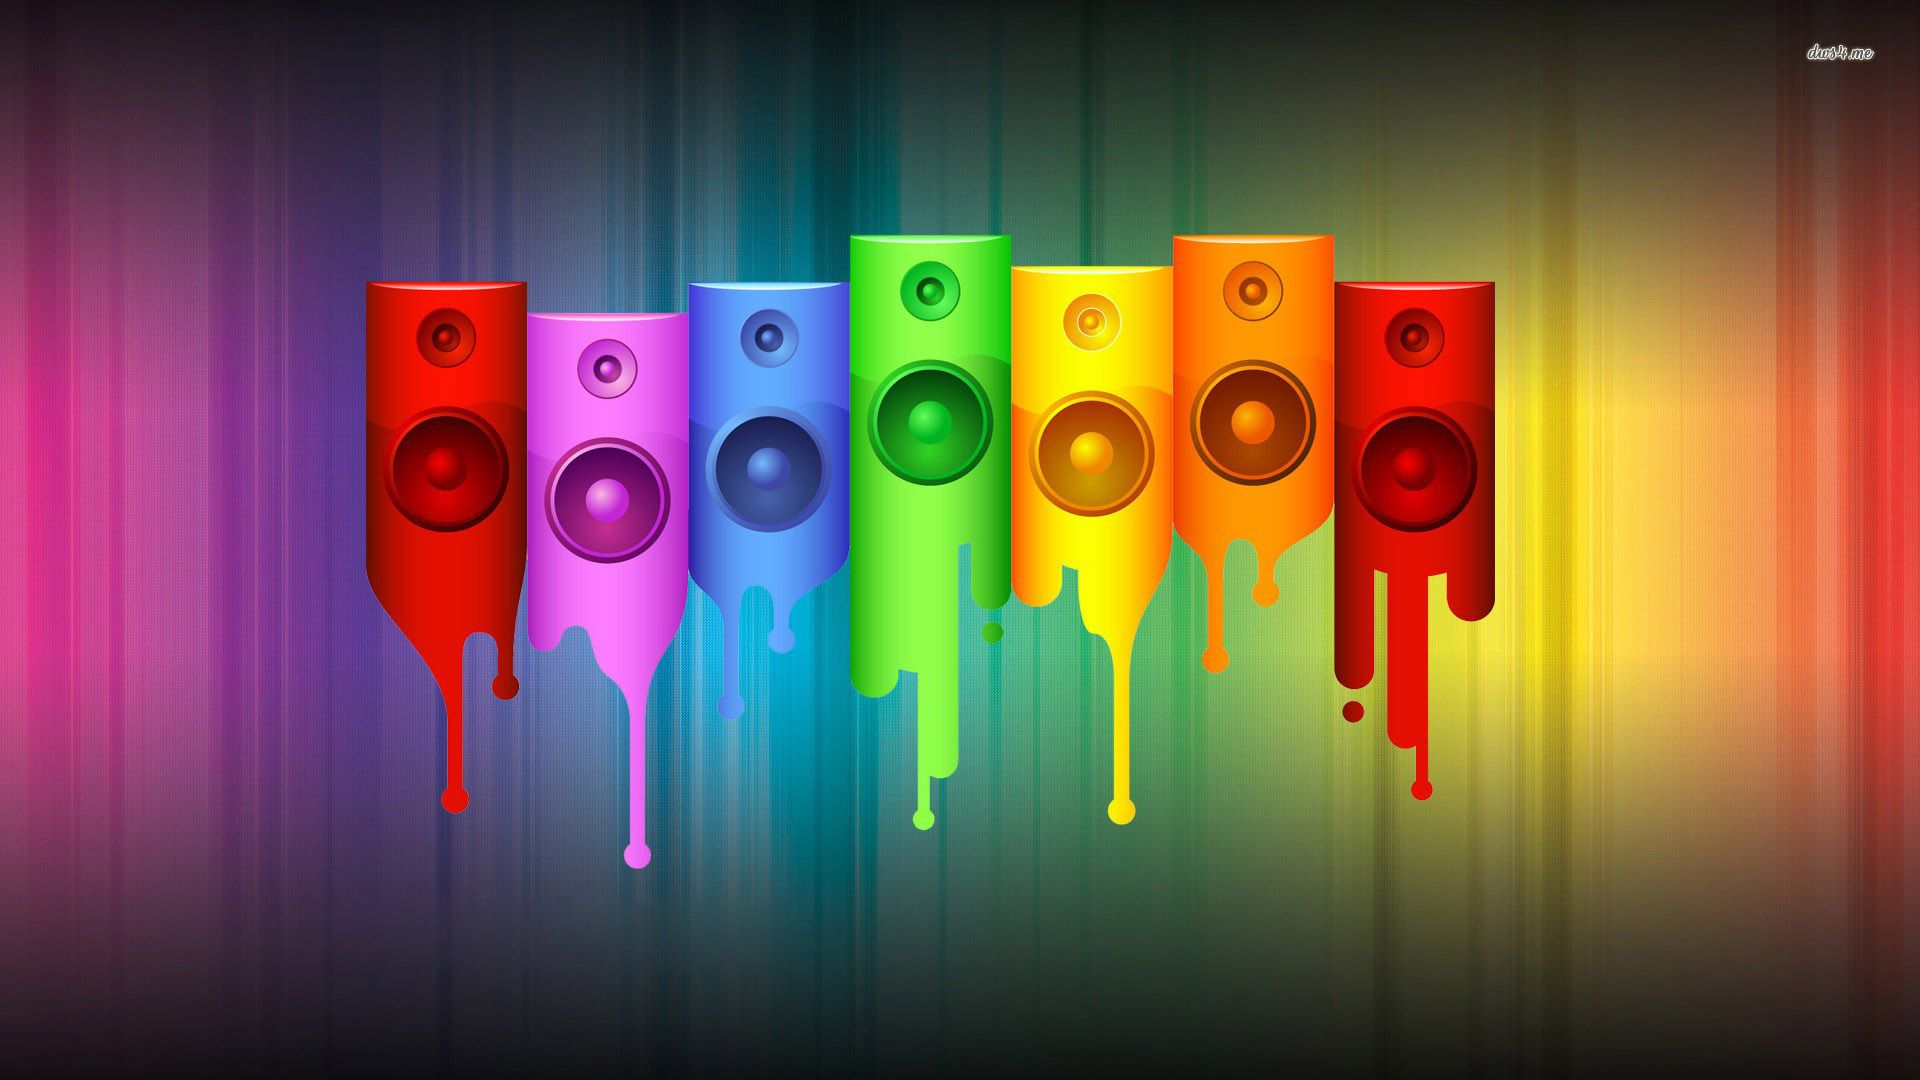 Colorful Music Wallpapers 19 85634 Images HD Wallpapers Wallfoy 1920x1080